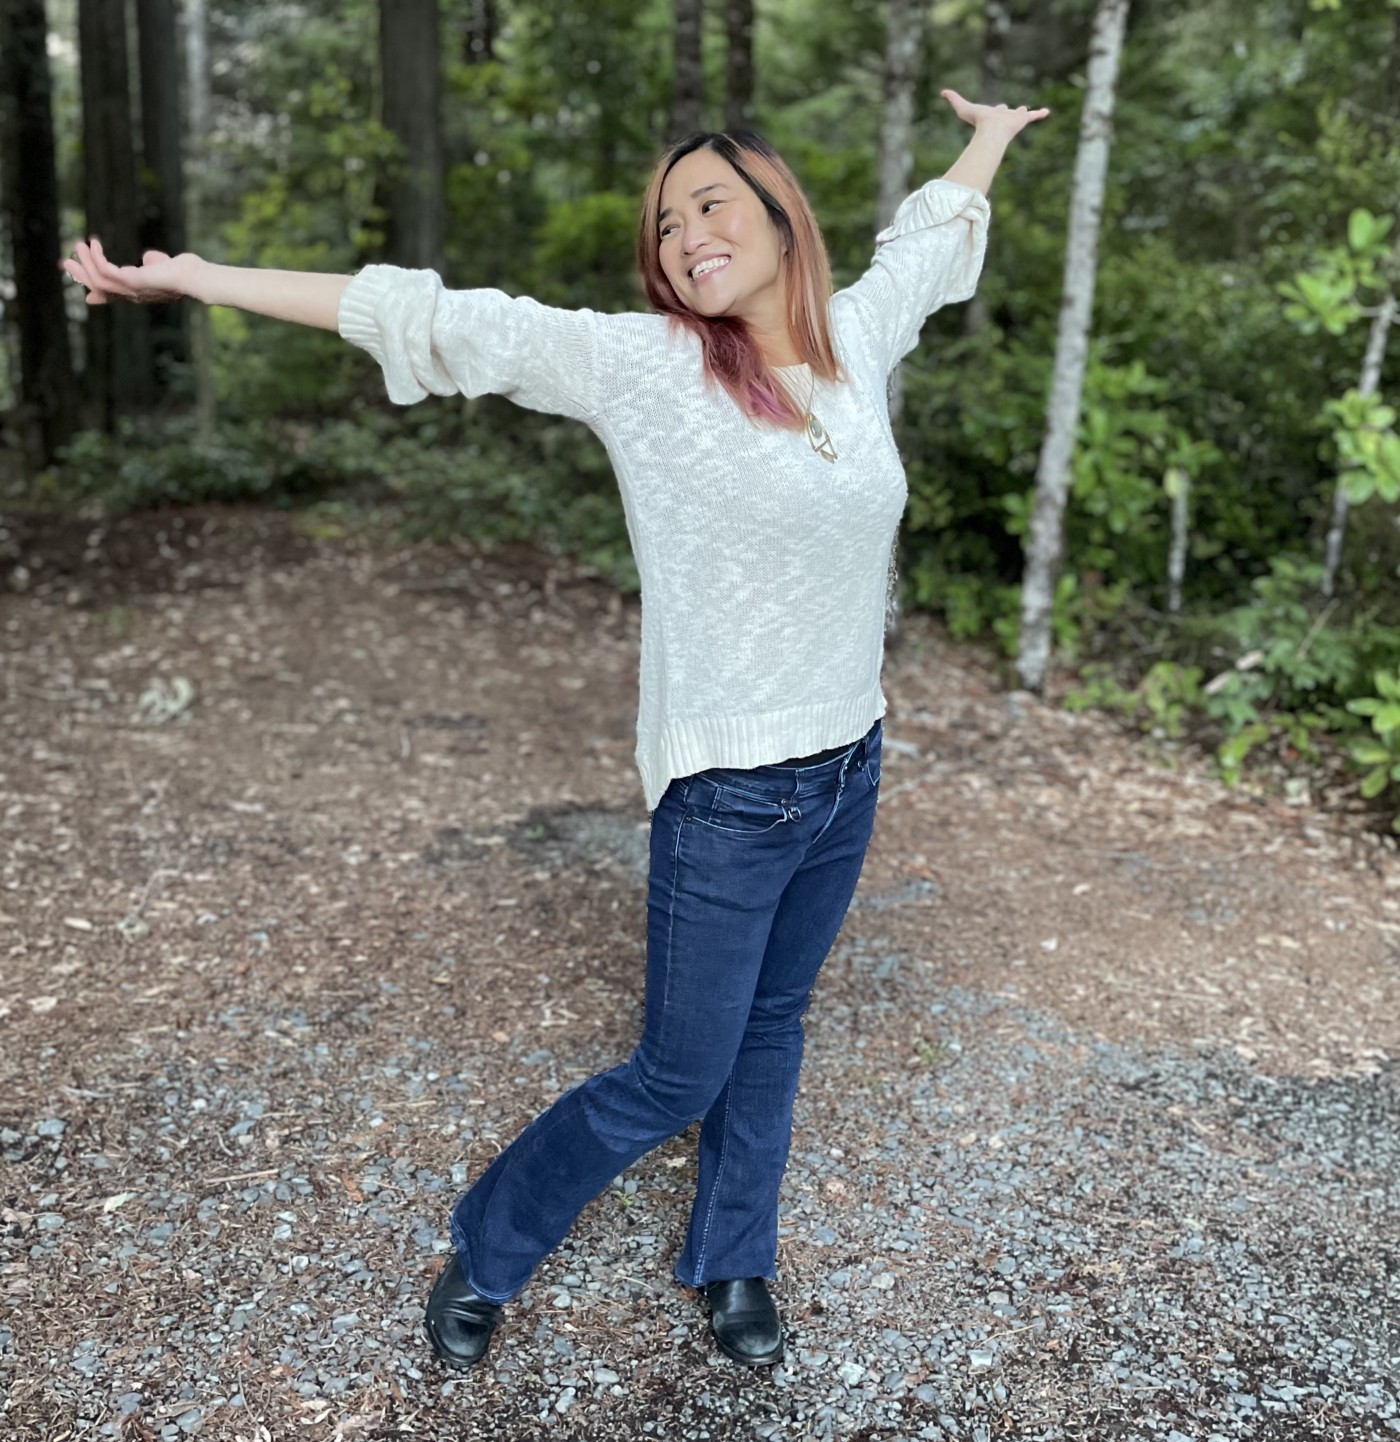 Photo of the author, hands raised mid-twirl, in a forest setting